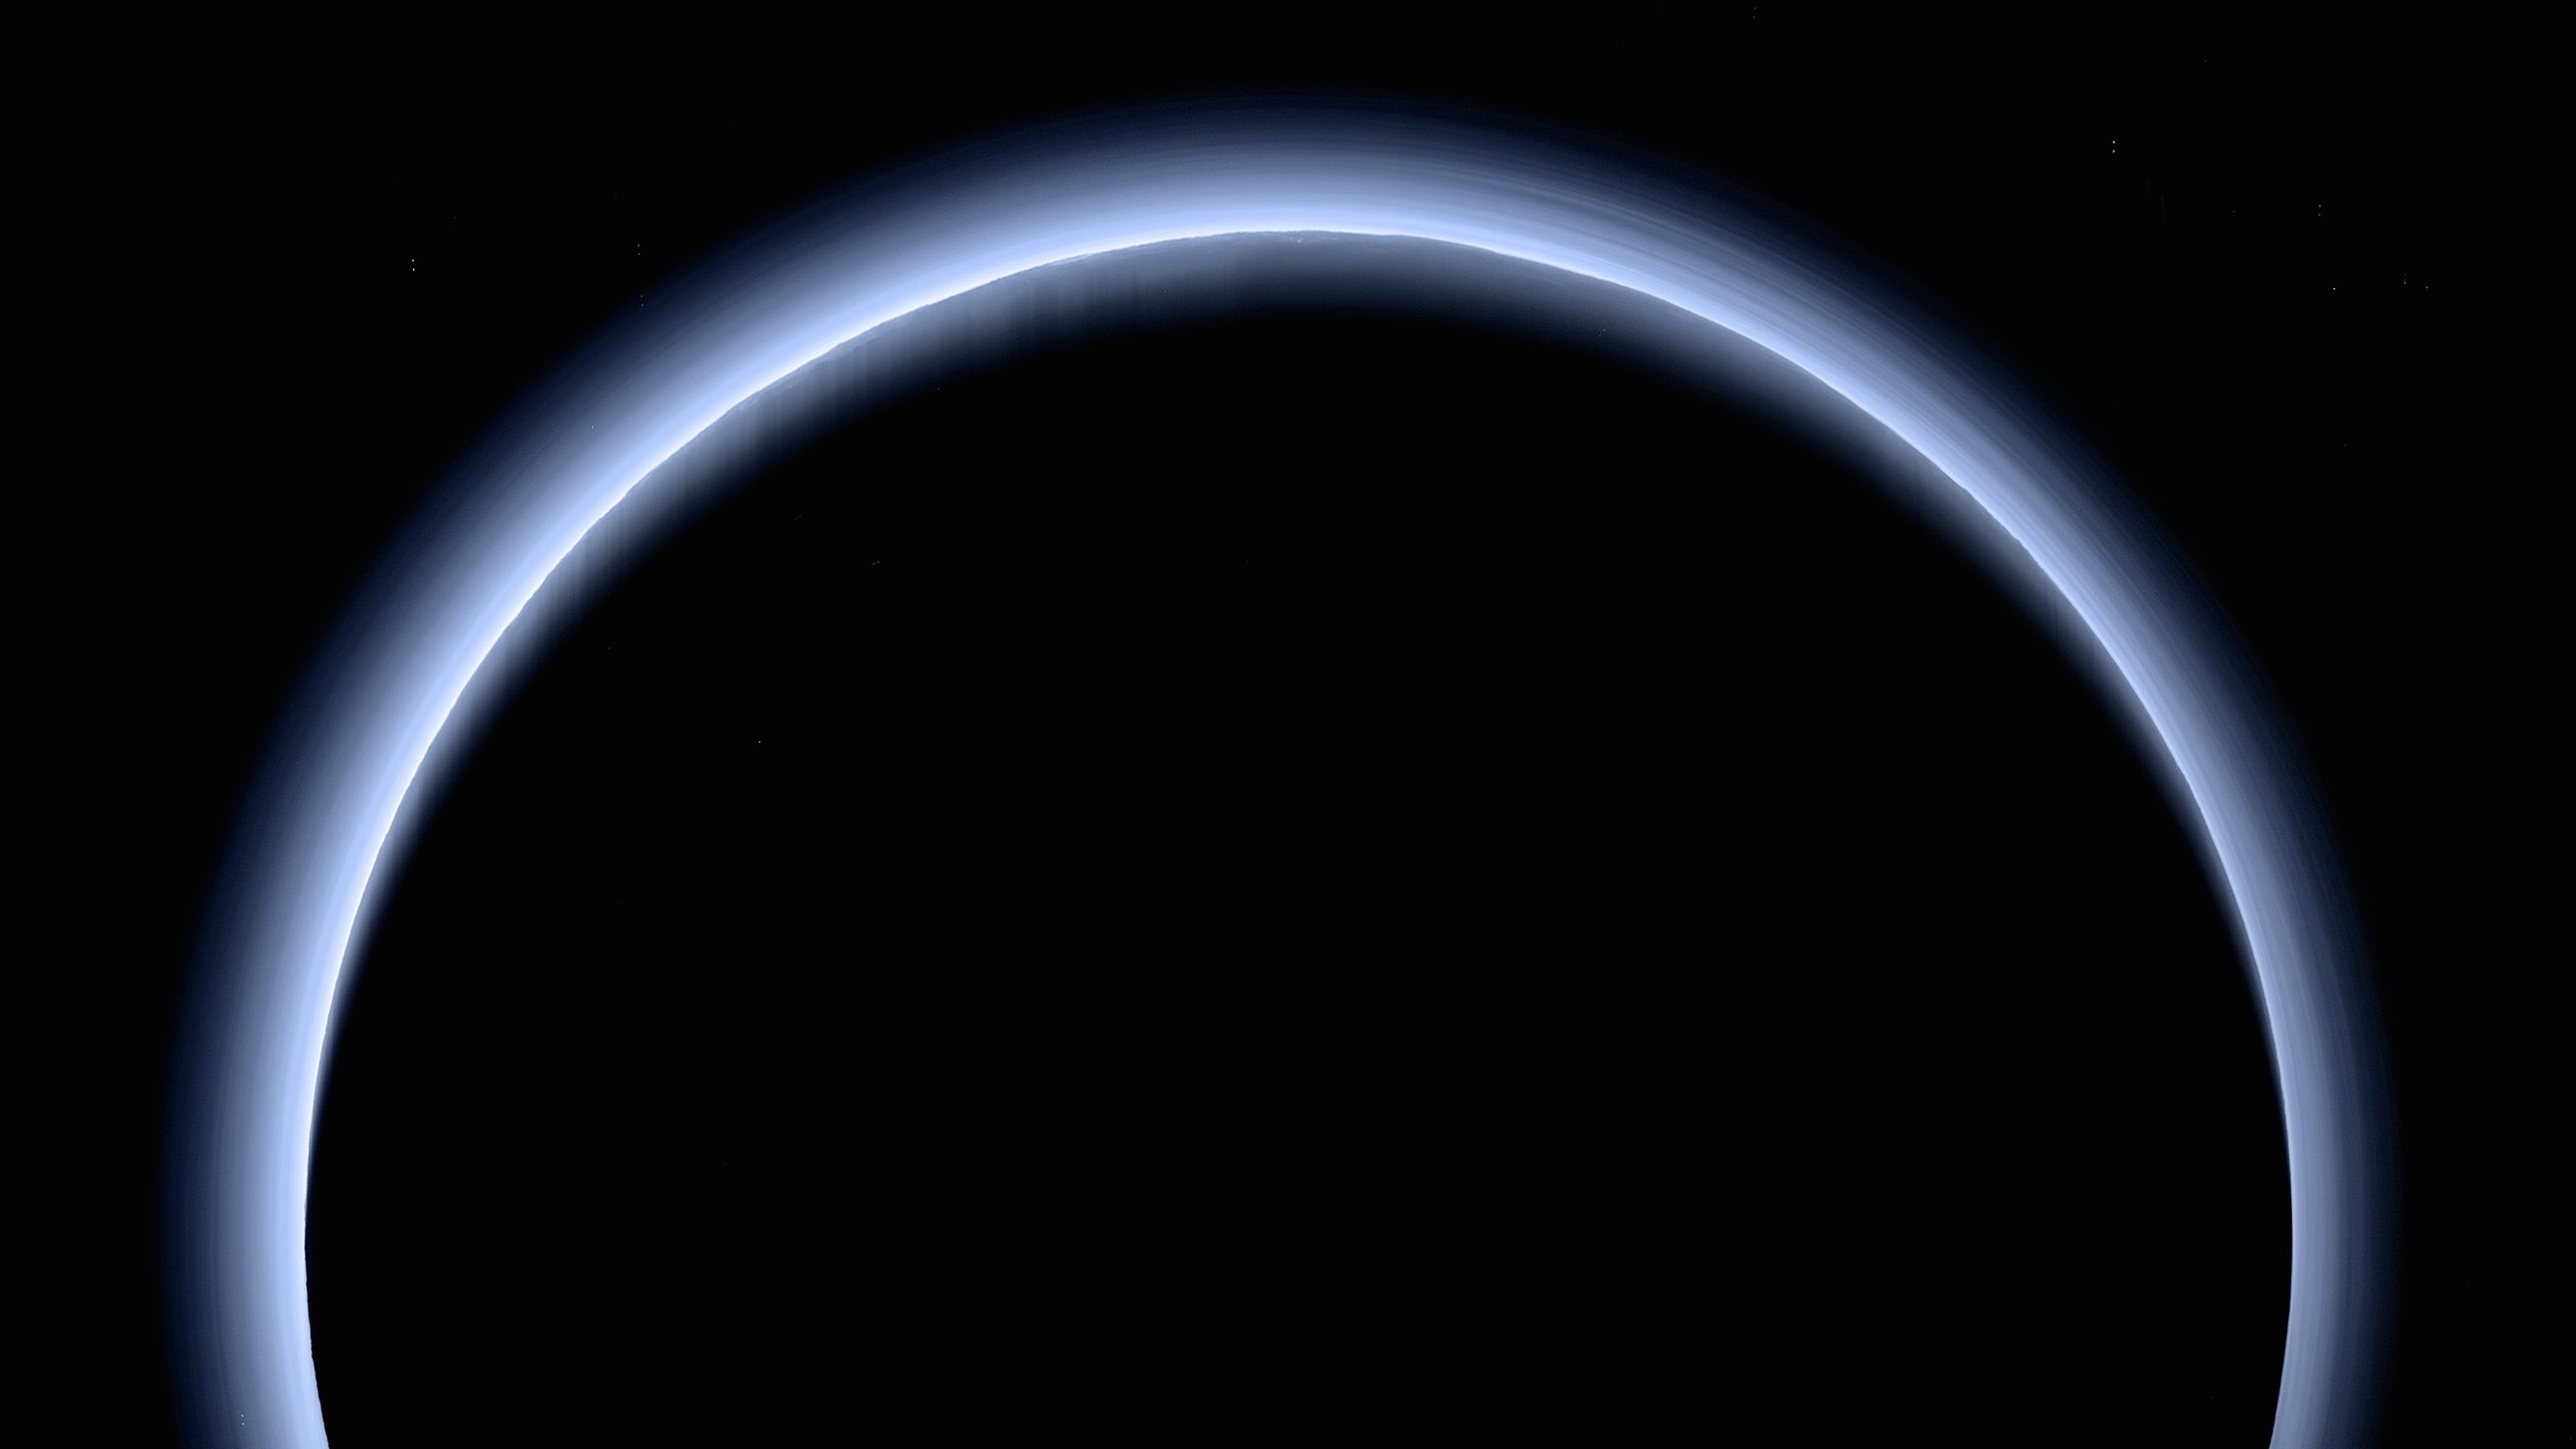 Why Pluto is losing its atmosphere: winter is coming